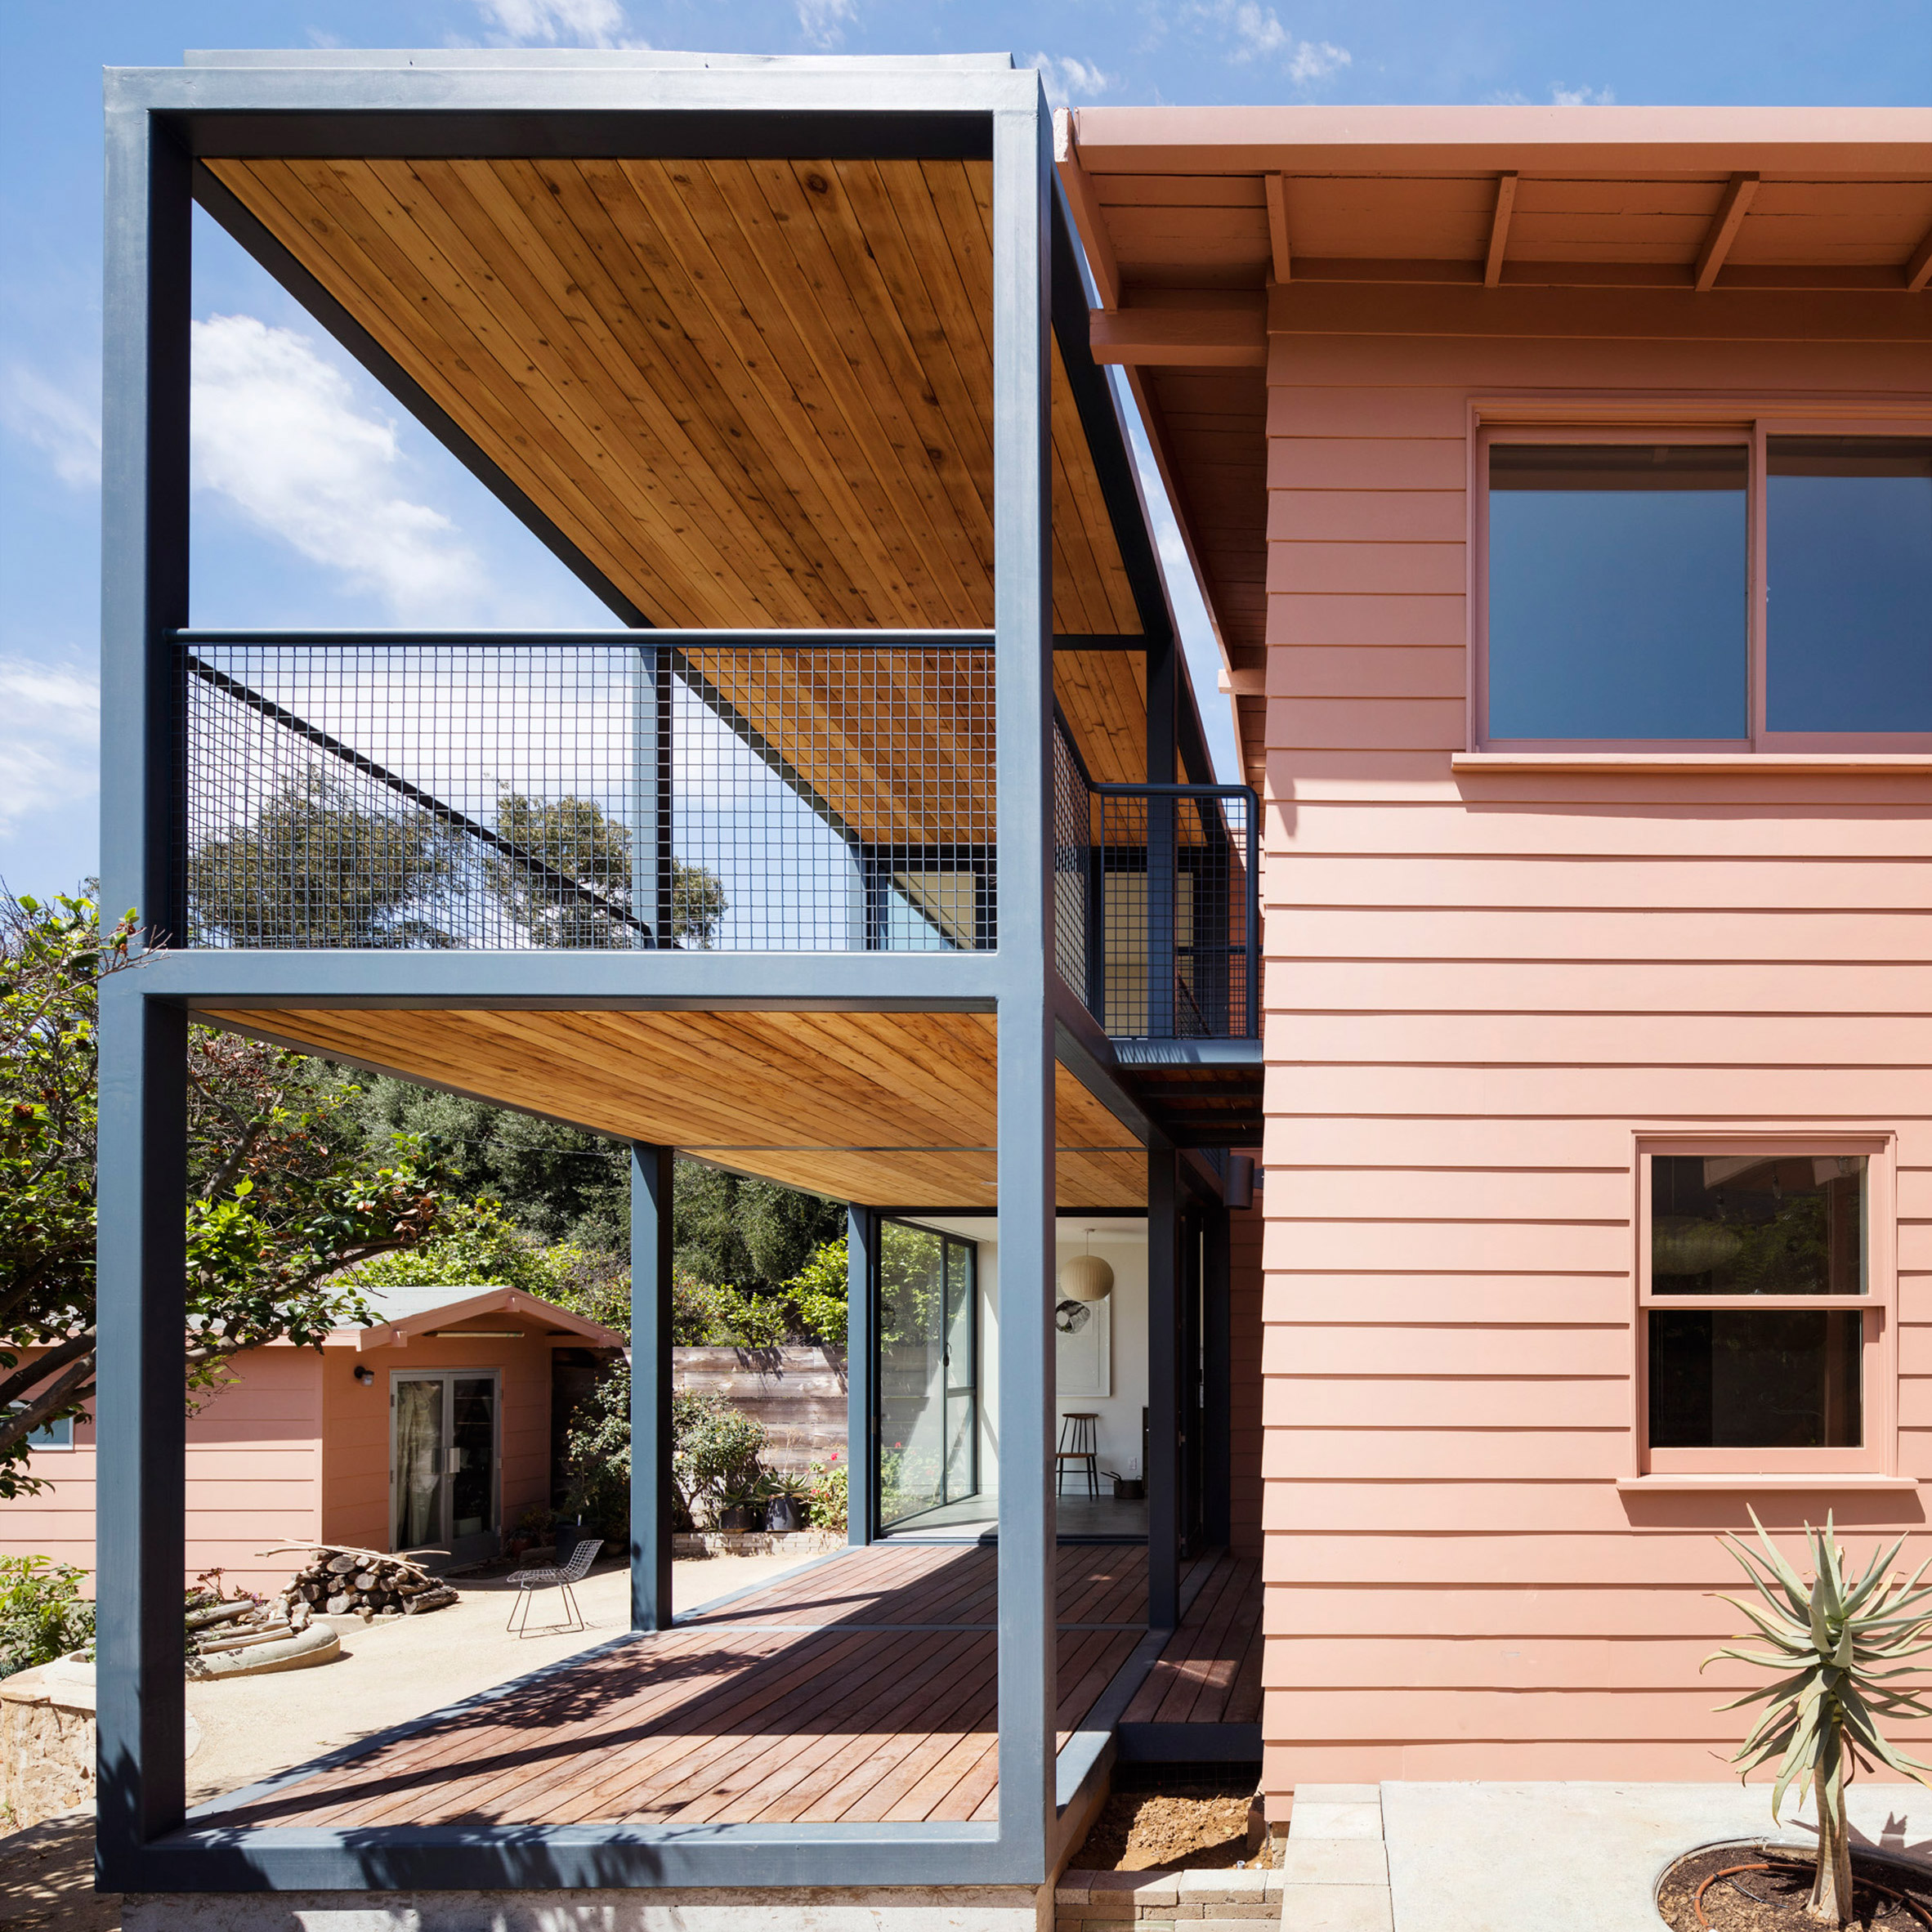 House design extension - Productora Adds Steel Frame Extension To Pink Bungalow In Los Angeles